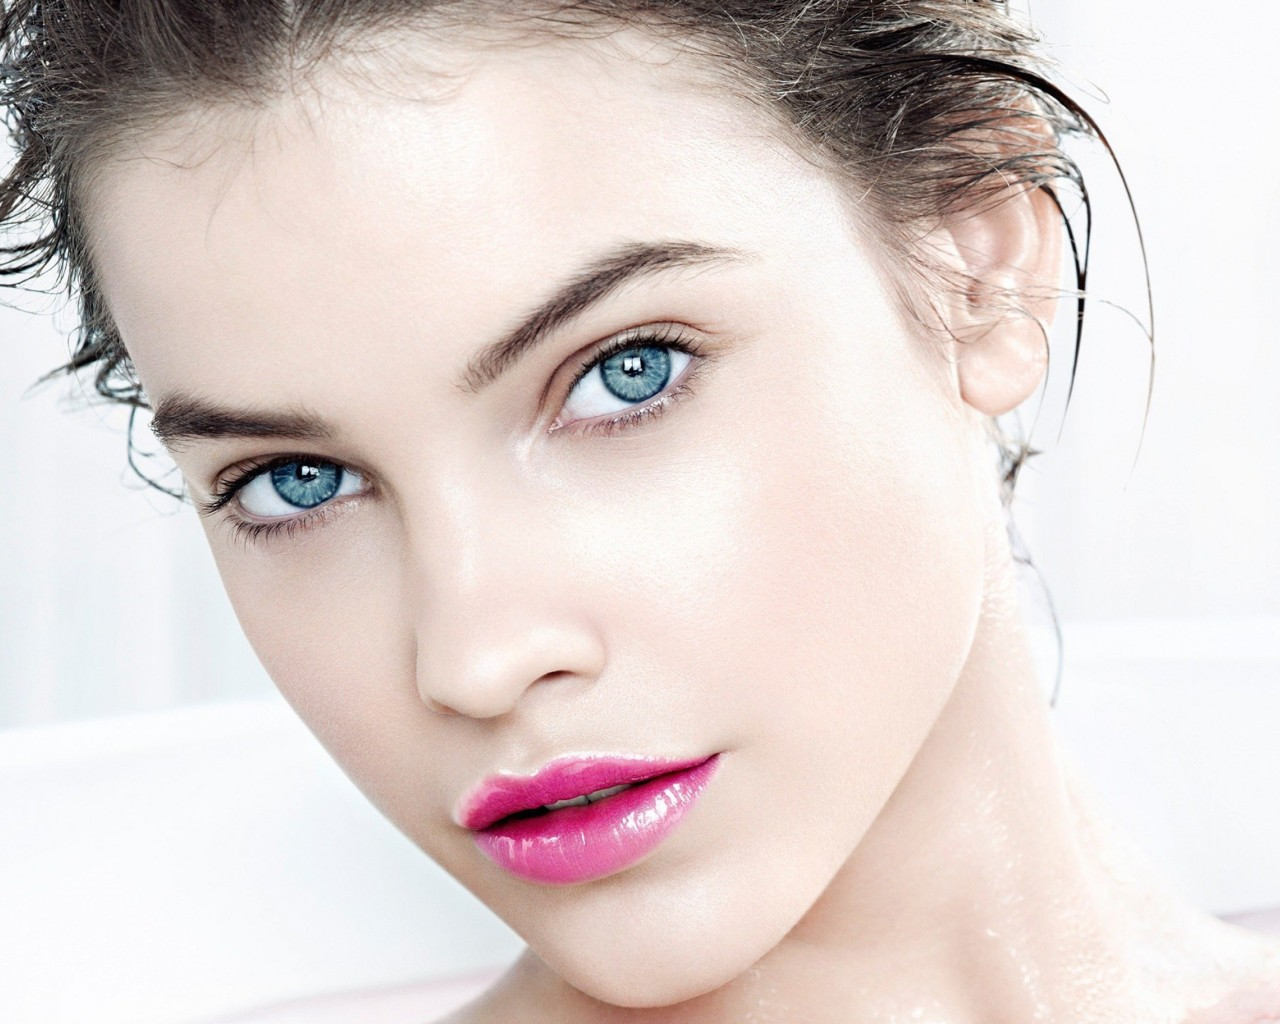 Barbara Palvin Wallpaper for Desktop 1280x1024